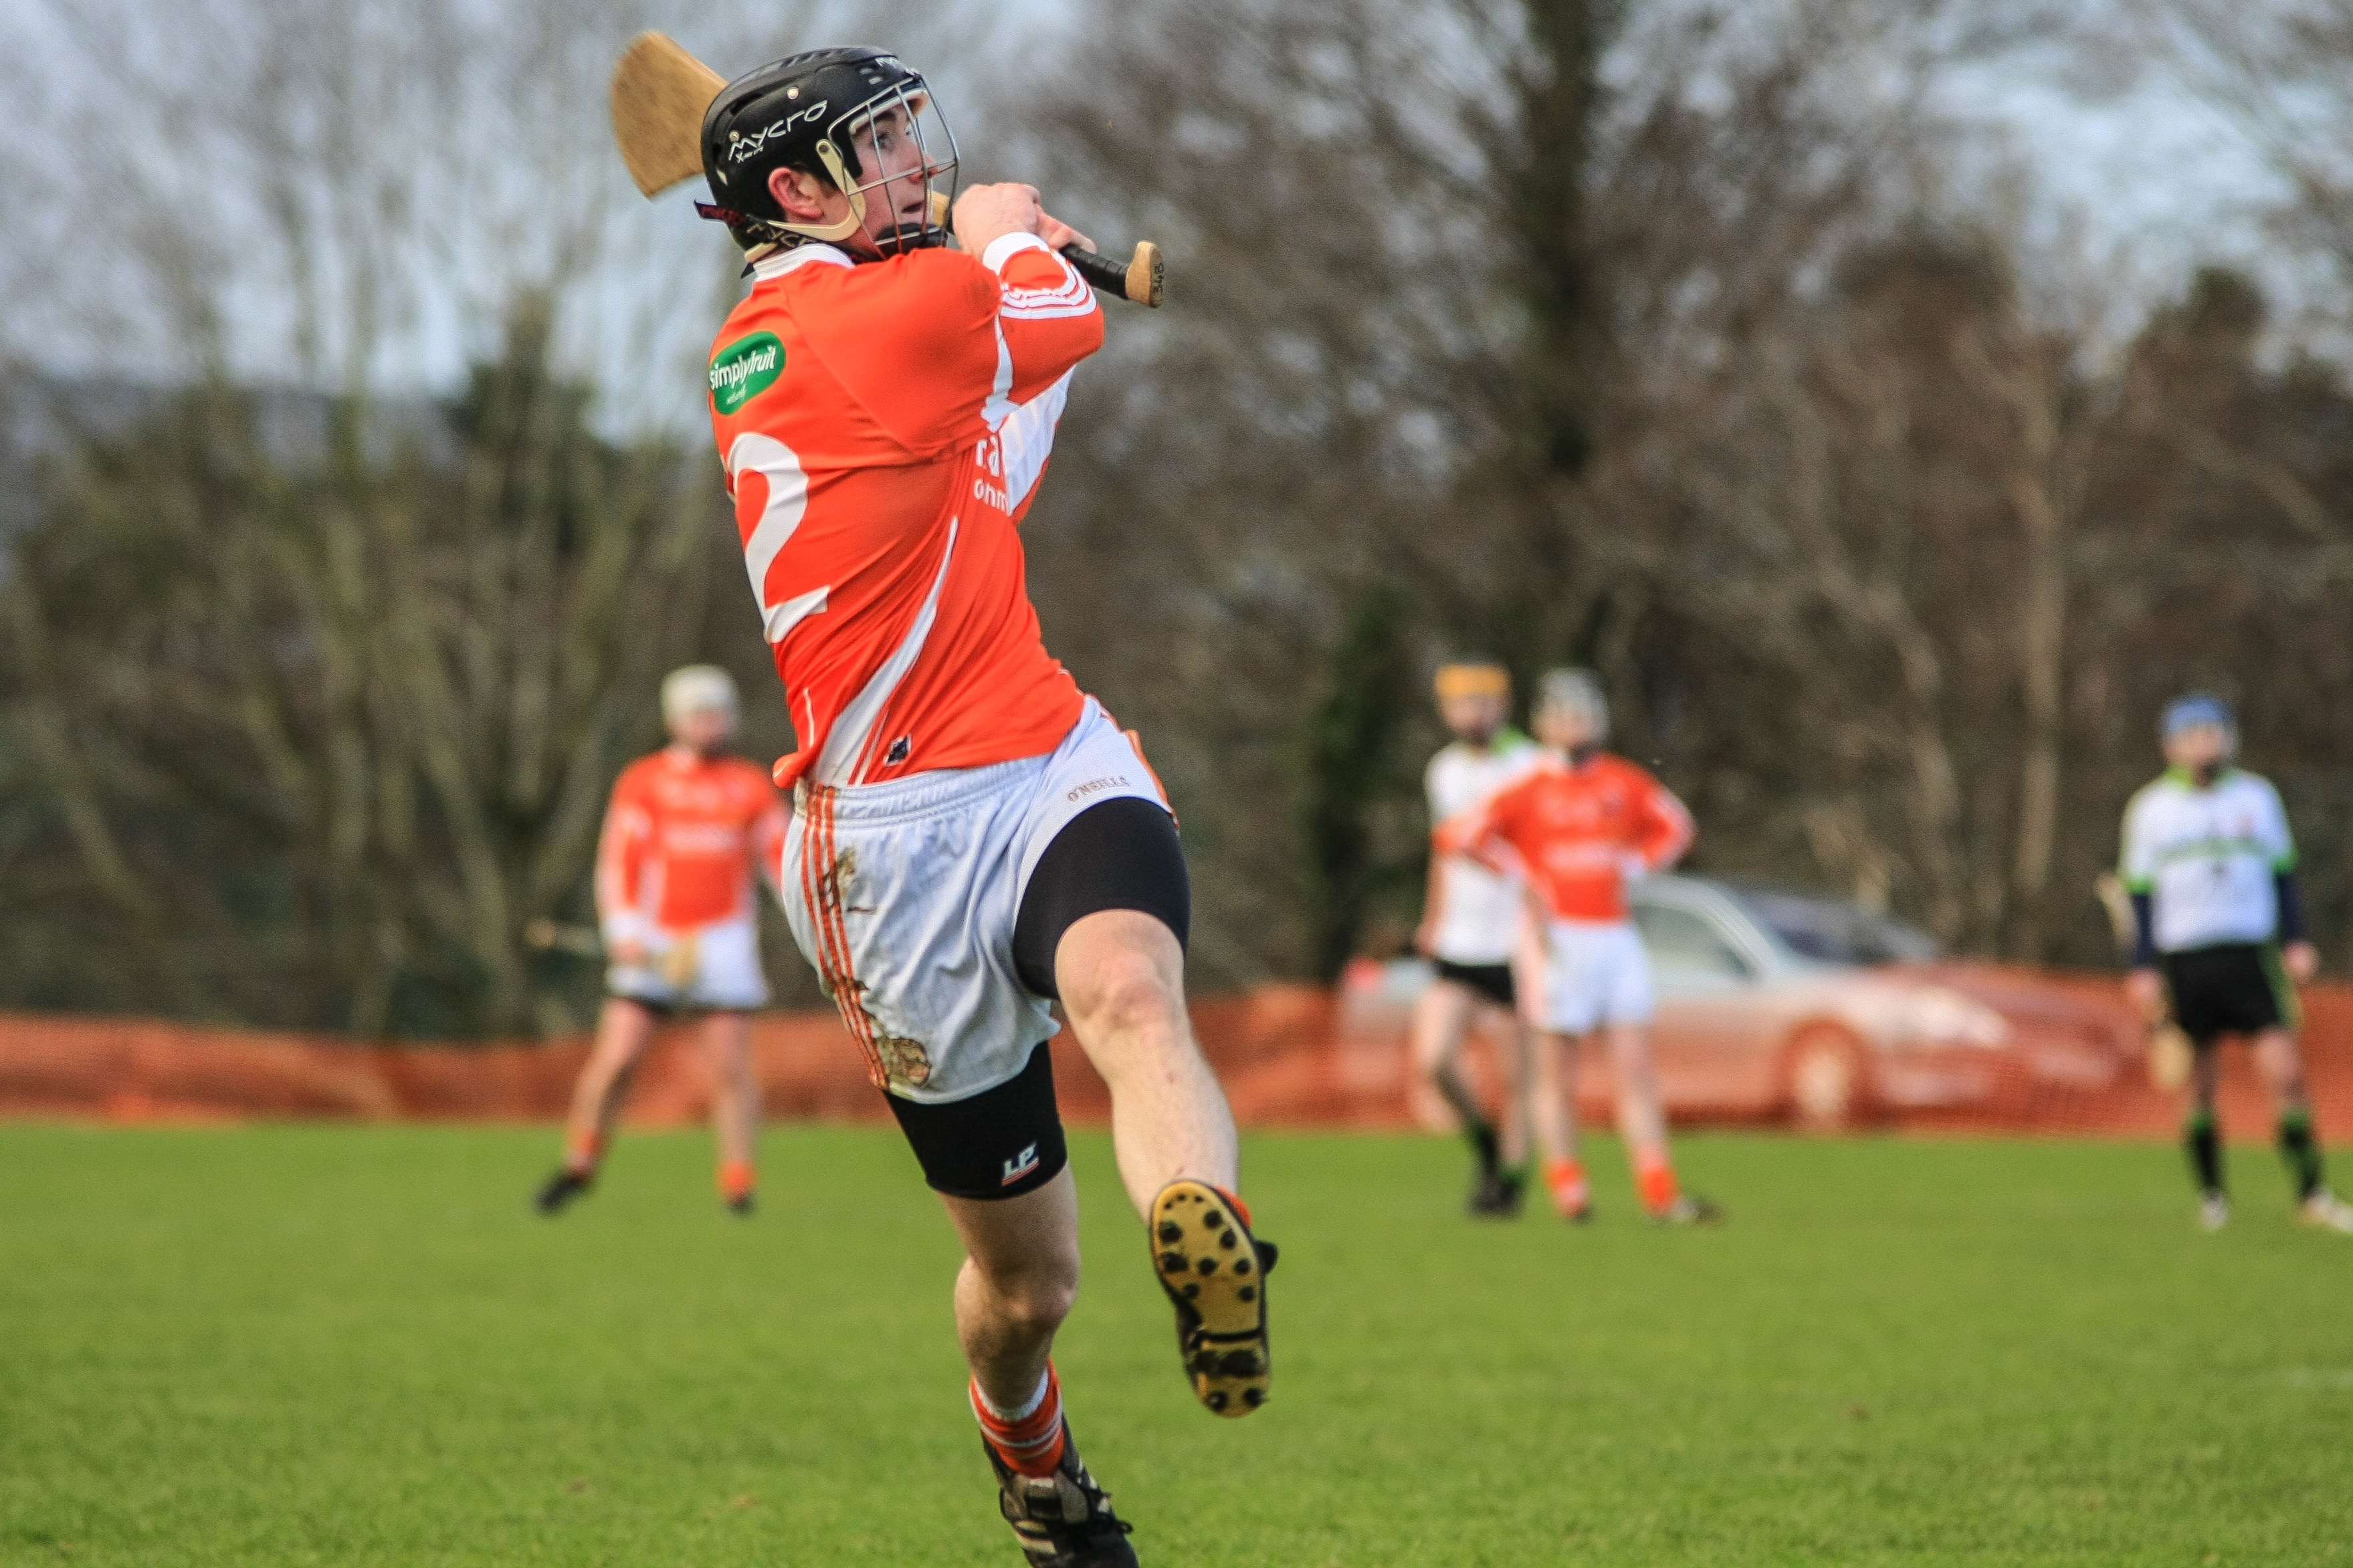 Conor McGurk Cup draws to a close this week